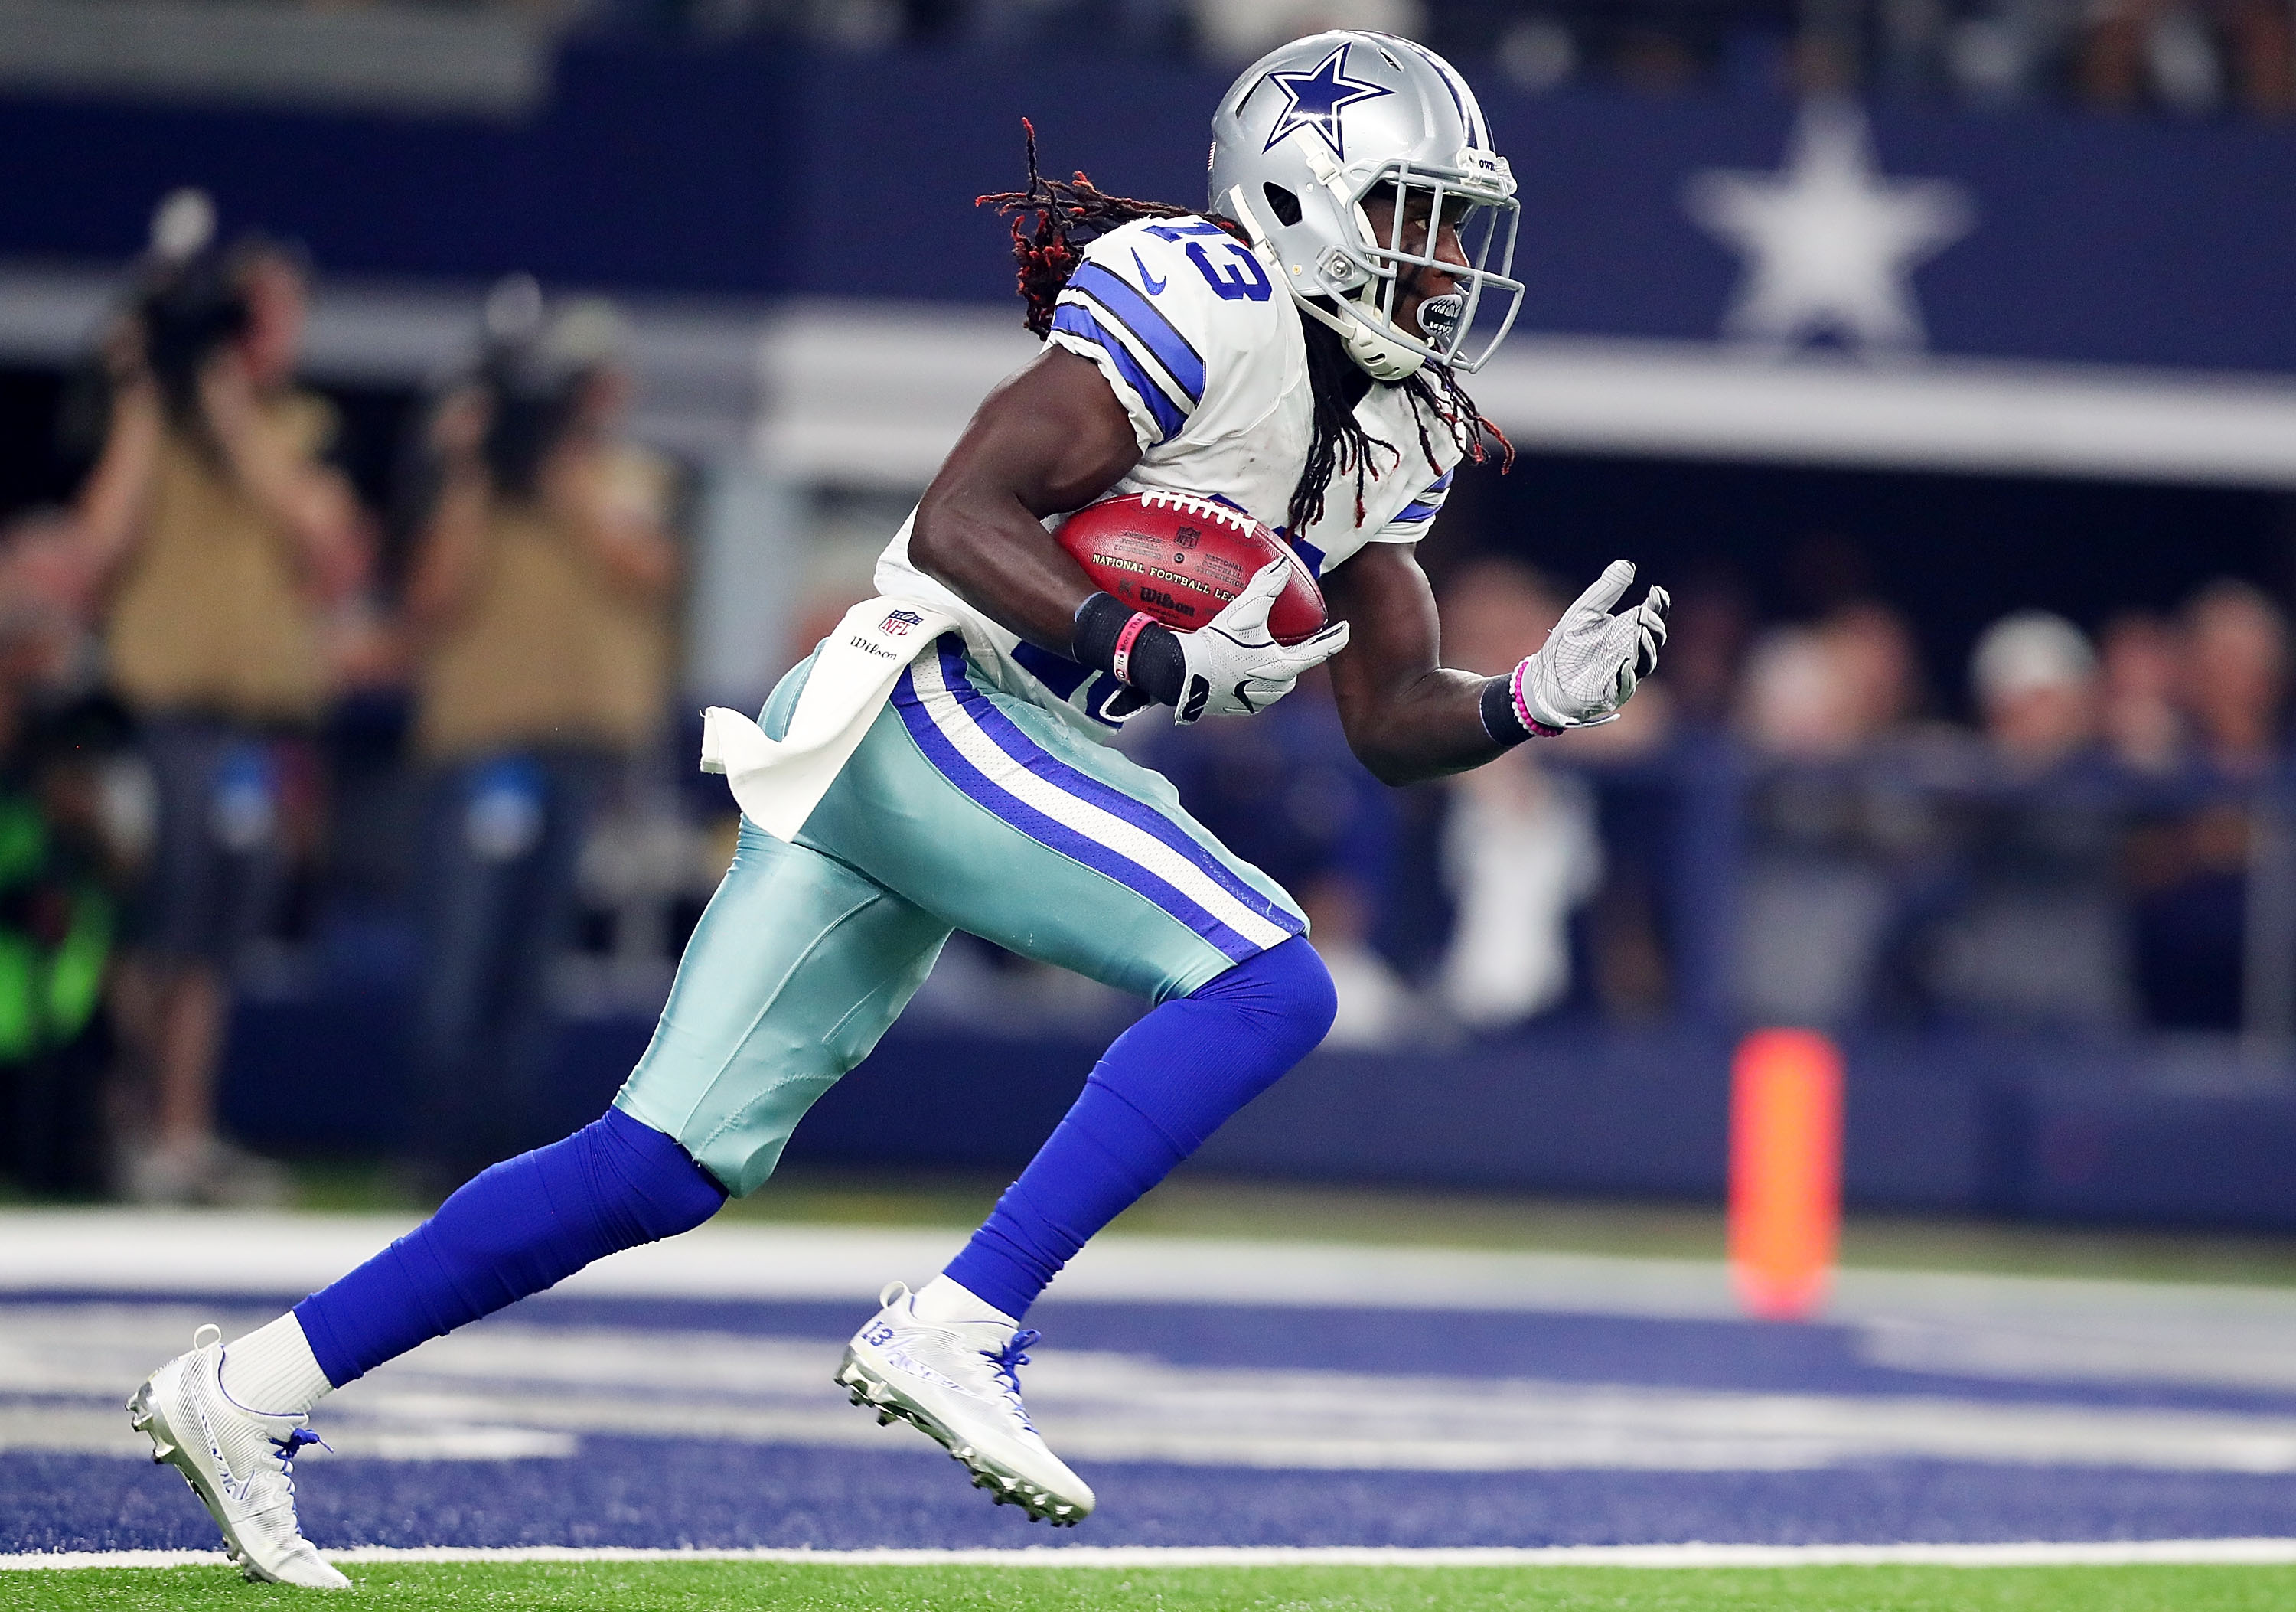 Dallas Cowboy Lucky Whitehead wanted by Prince William police